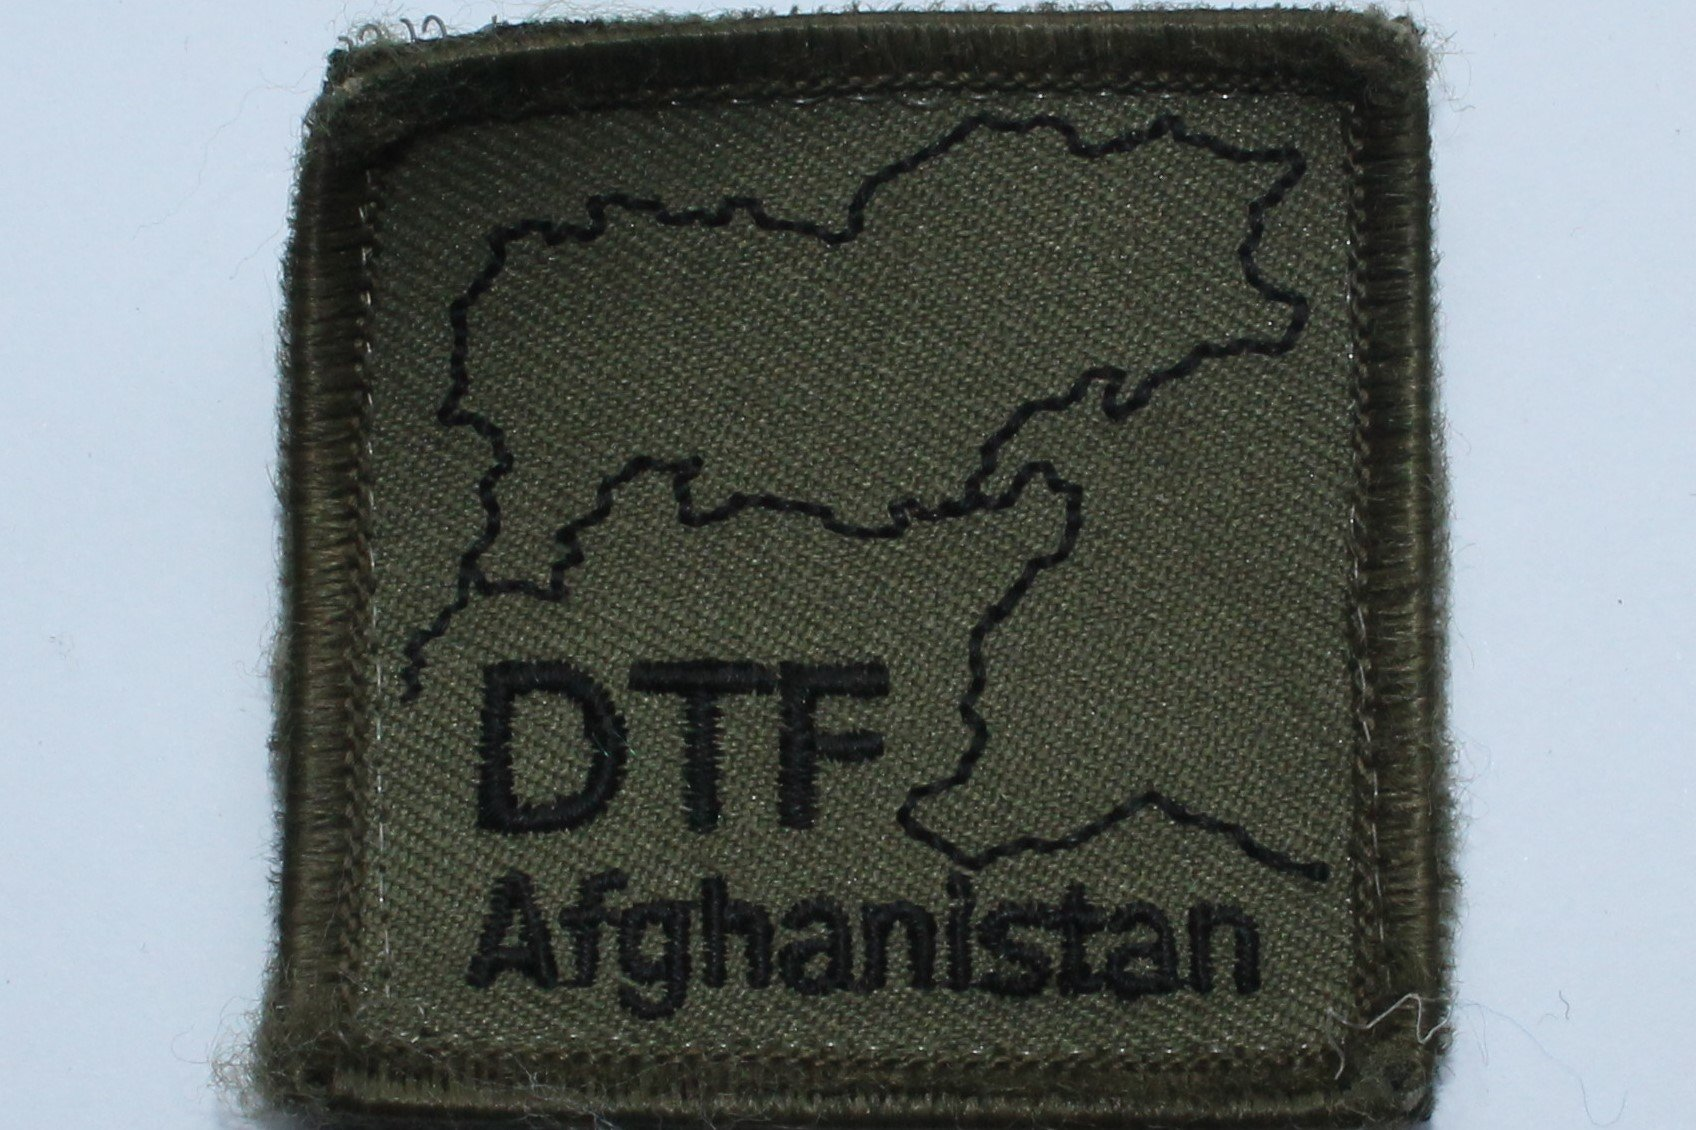 Deployment Task Force (DTF)